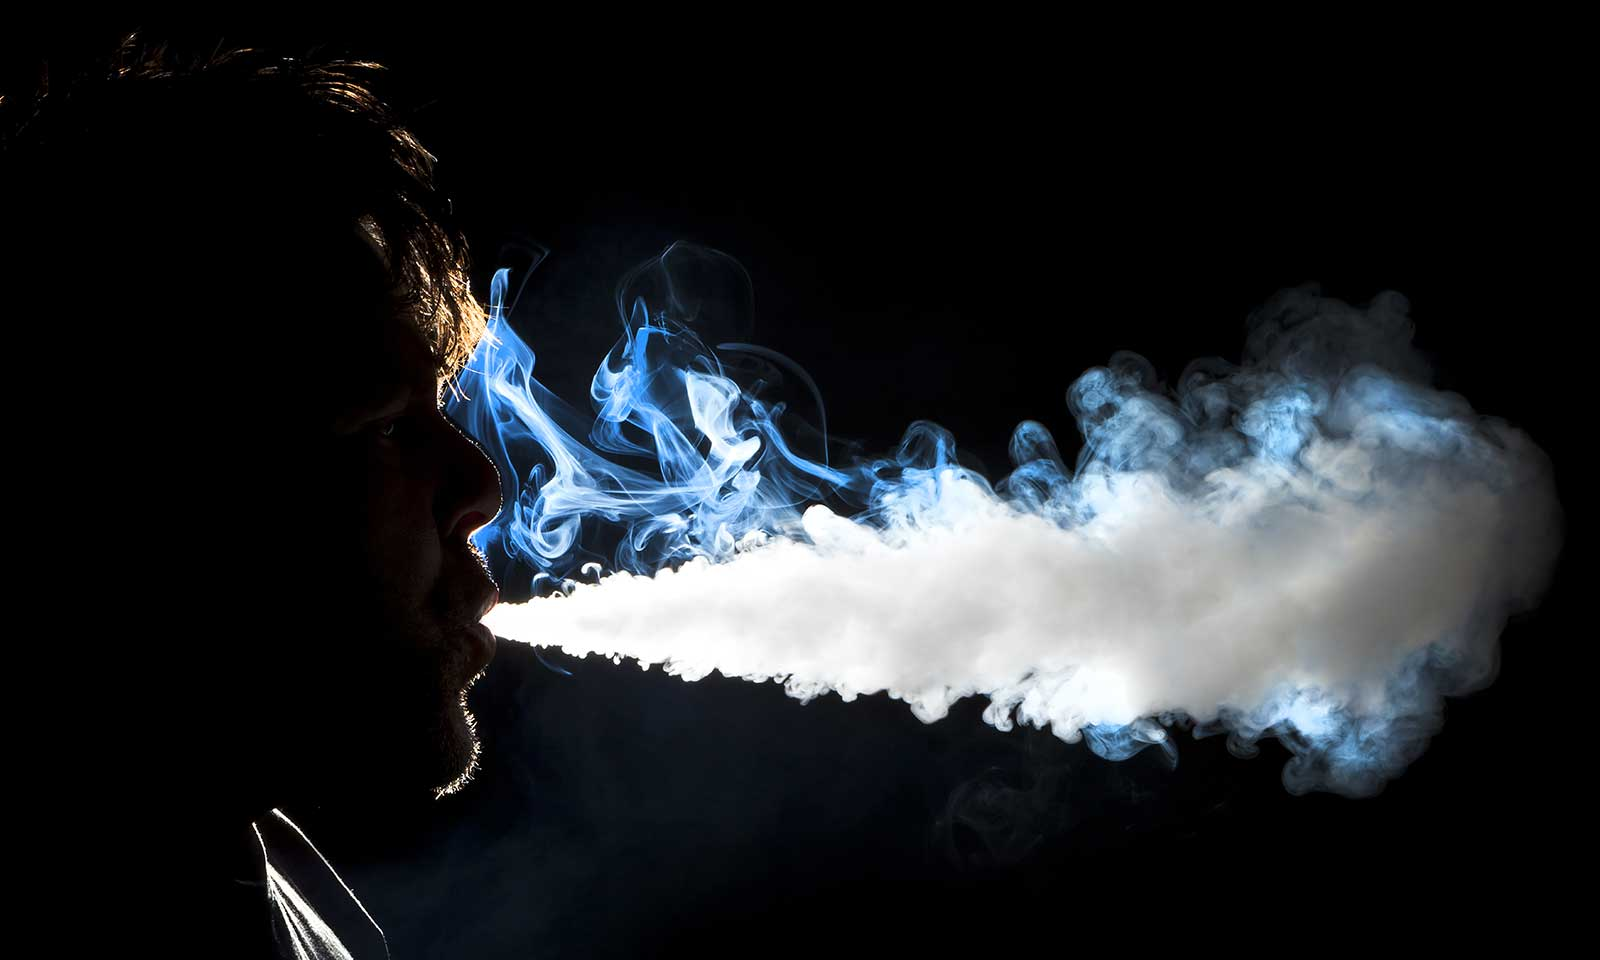 Experiment Finds Using E-Cigarettes Significantly Cuts Down On Tobacco Use